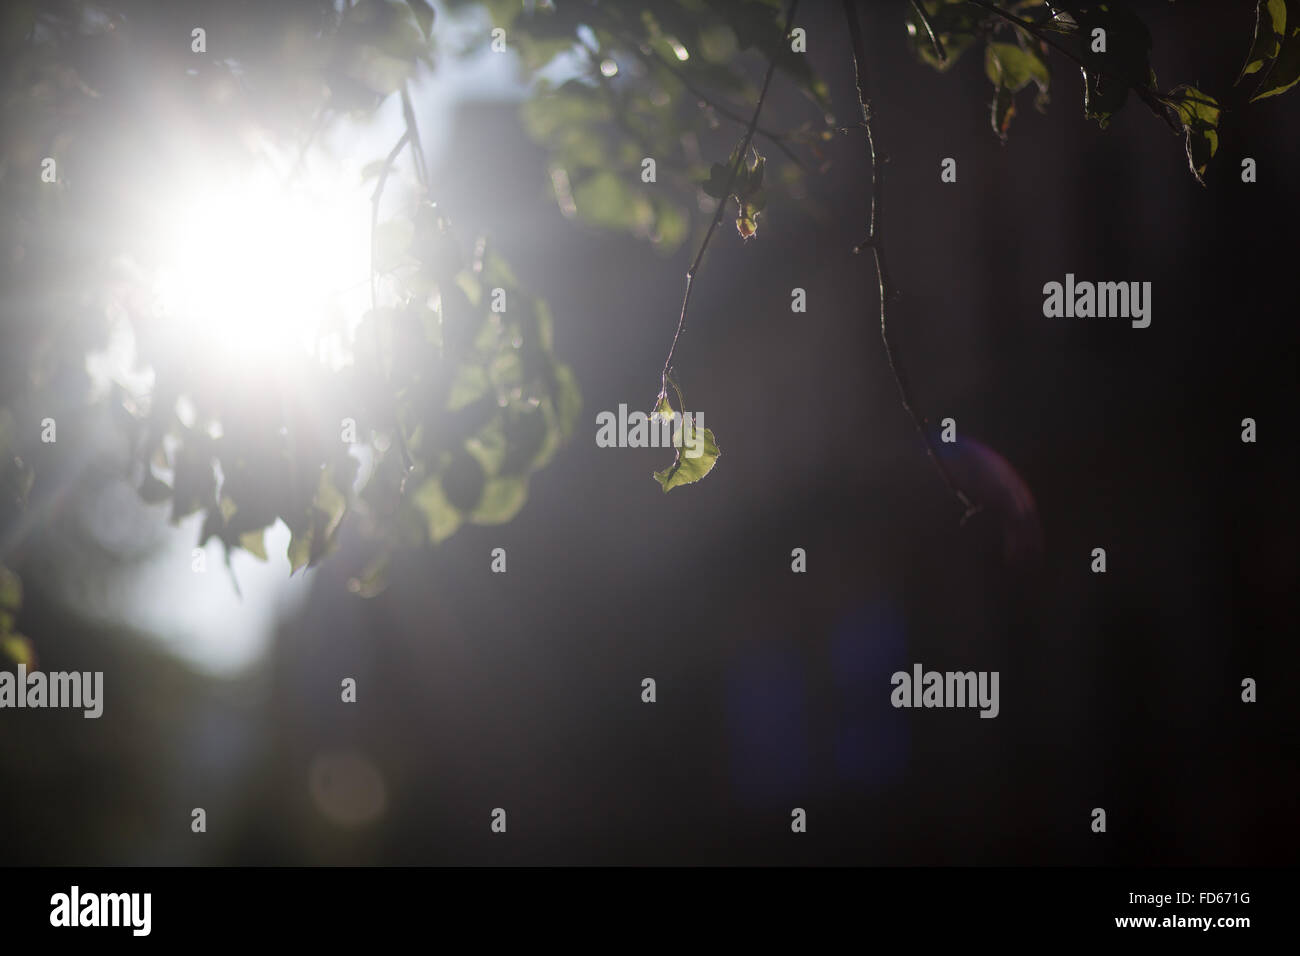 Sunlight Beaming Through Tree Leaves - Stock Image